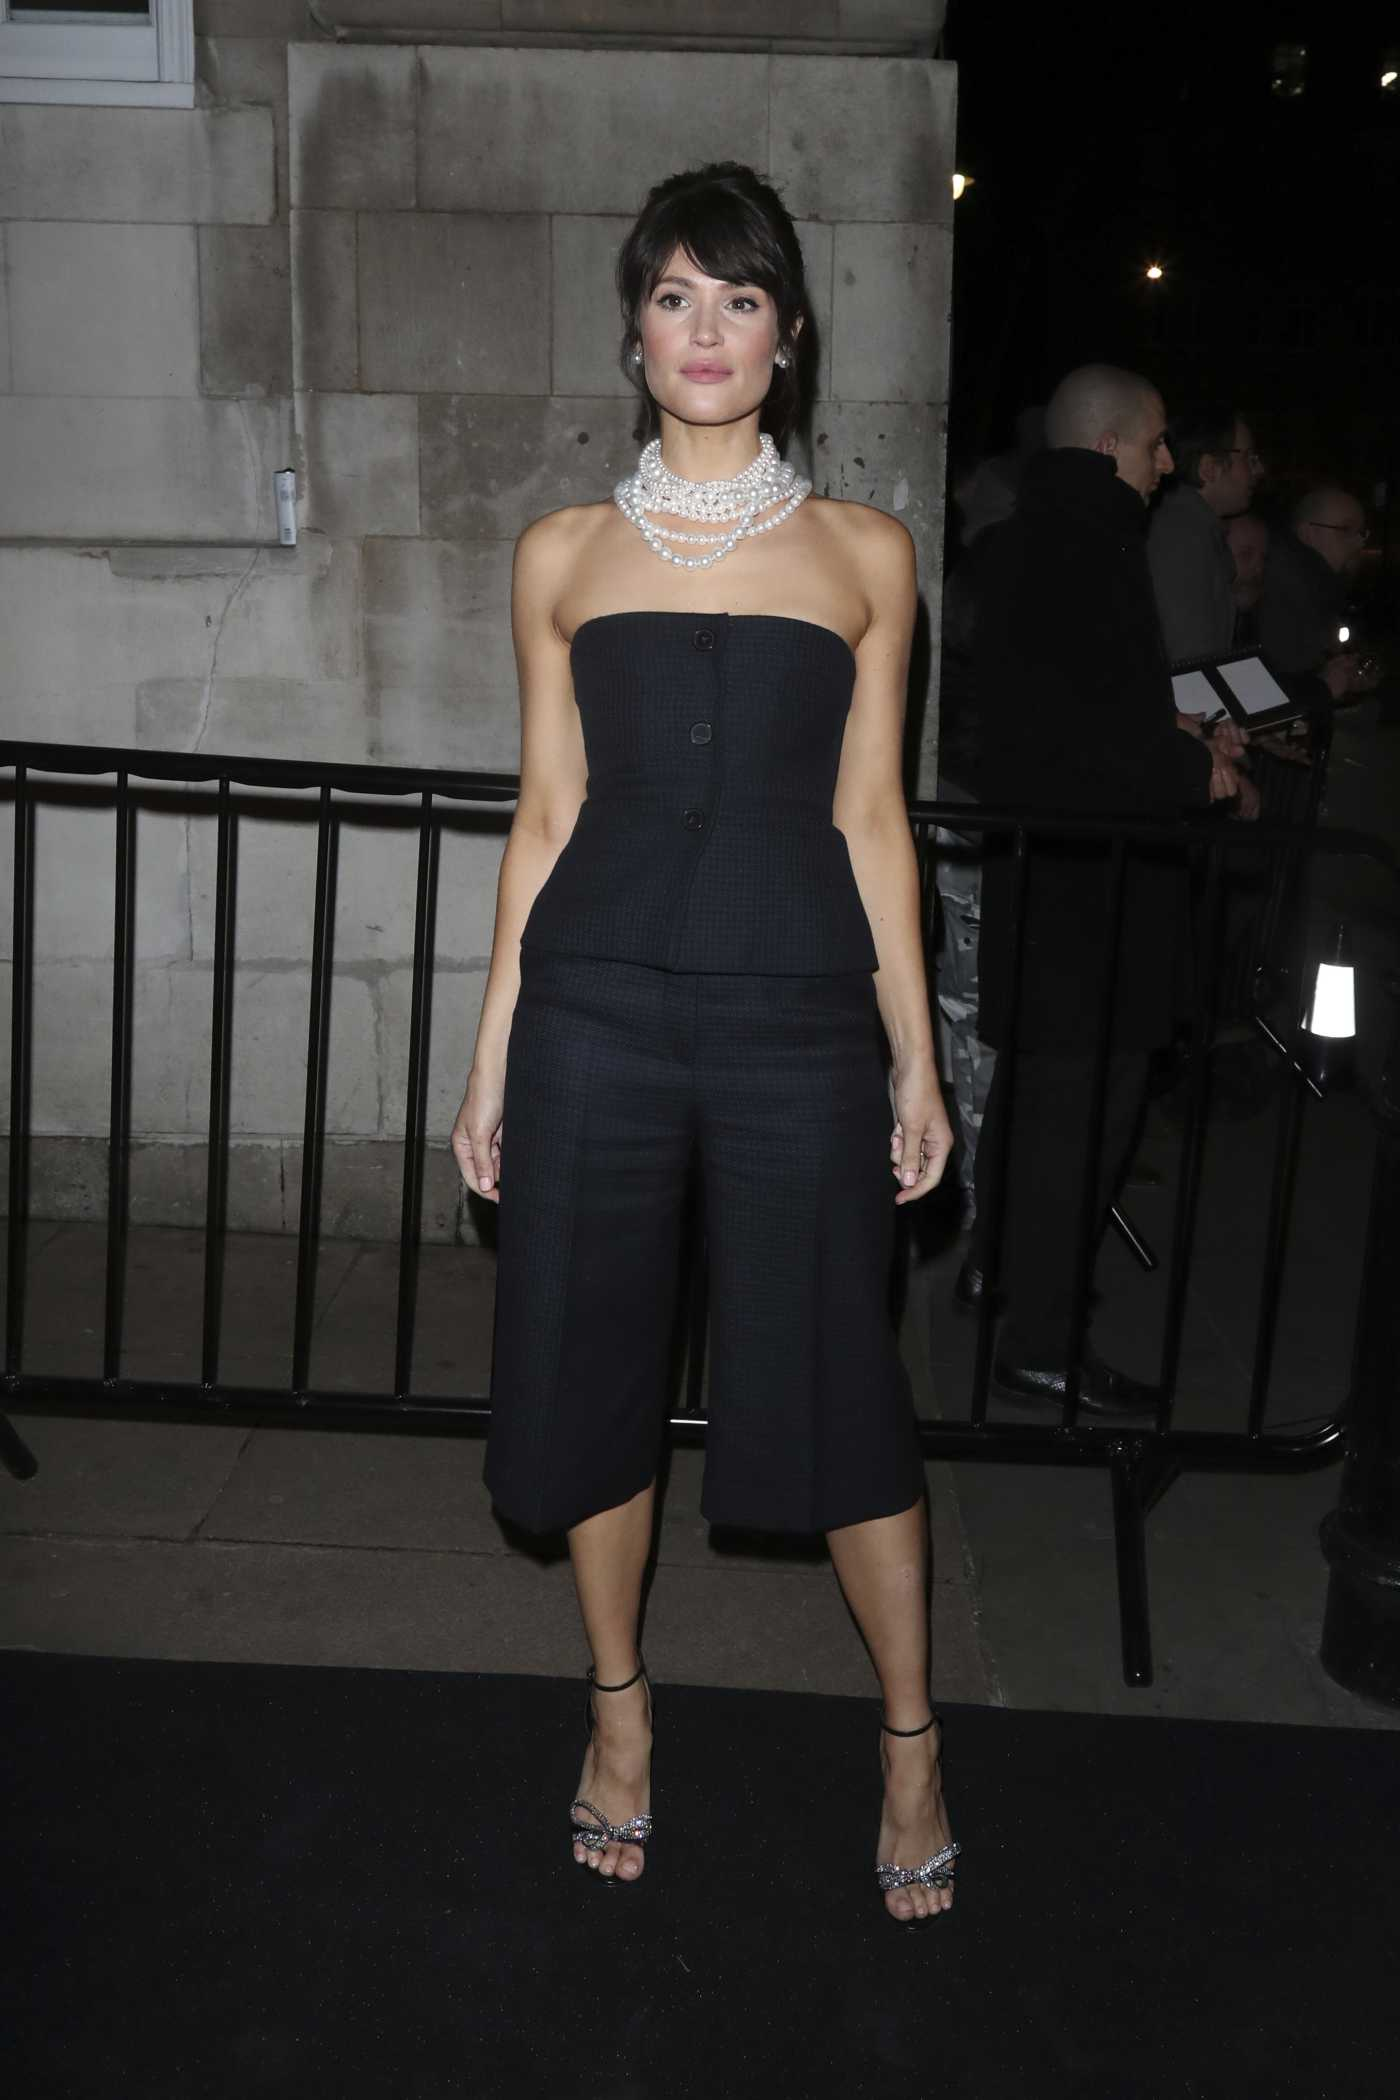 Gemma Arterton Attends 2020 Charles Finch and Chanel Pre-Bafta Party in London 02/01/2020